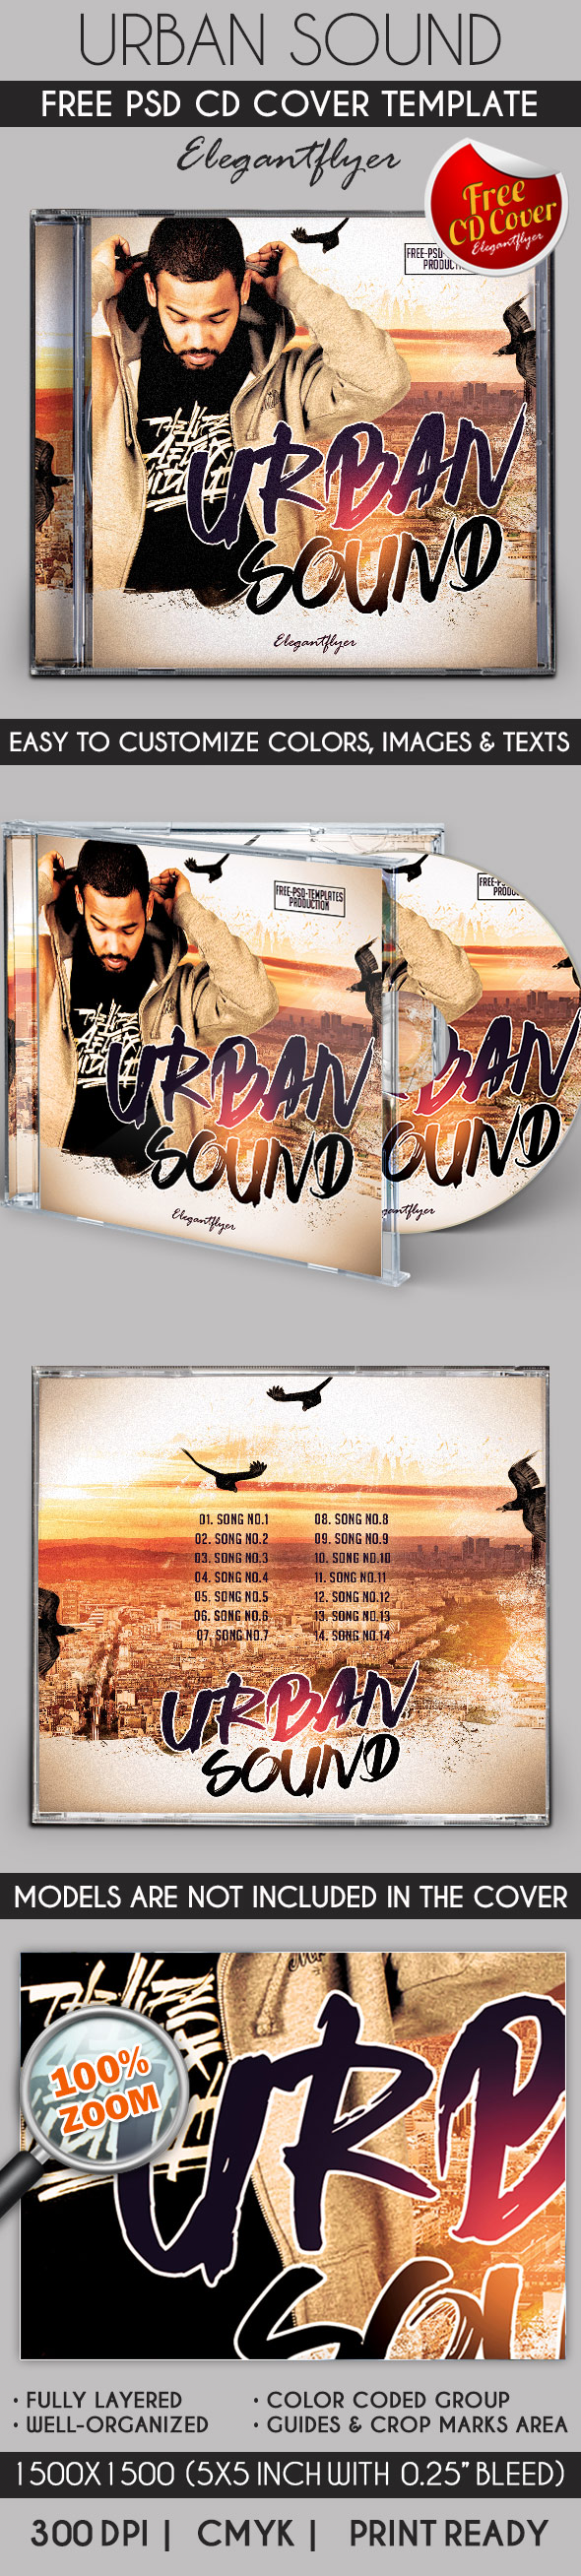 Free Template CD Cover for Urban Music | Pinterest